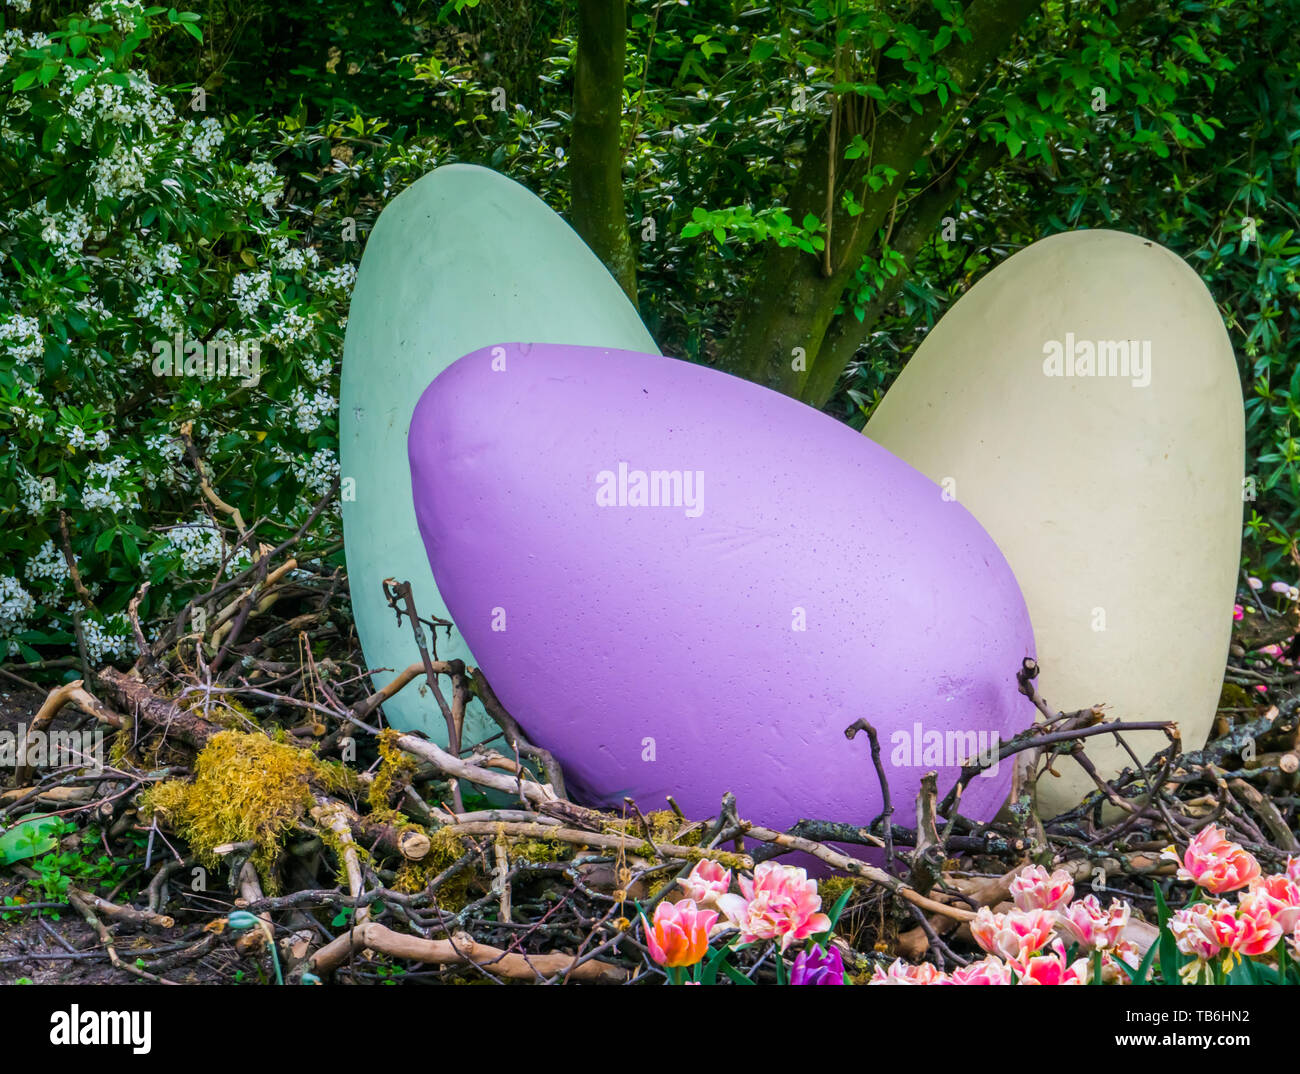 Large Vivid Colored Easter Eggs In A Big Birds Nest Outdoor